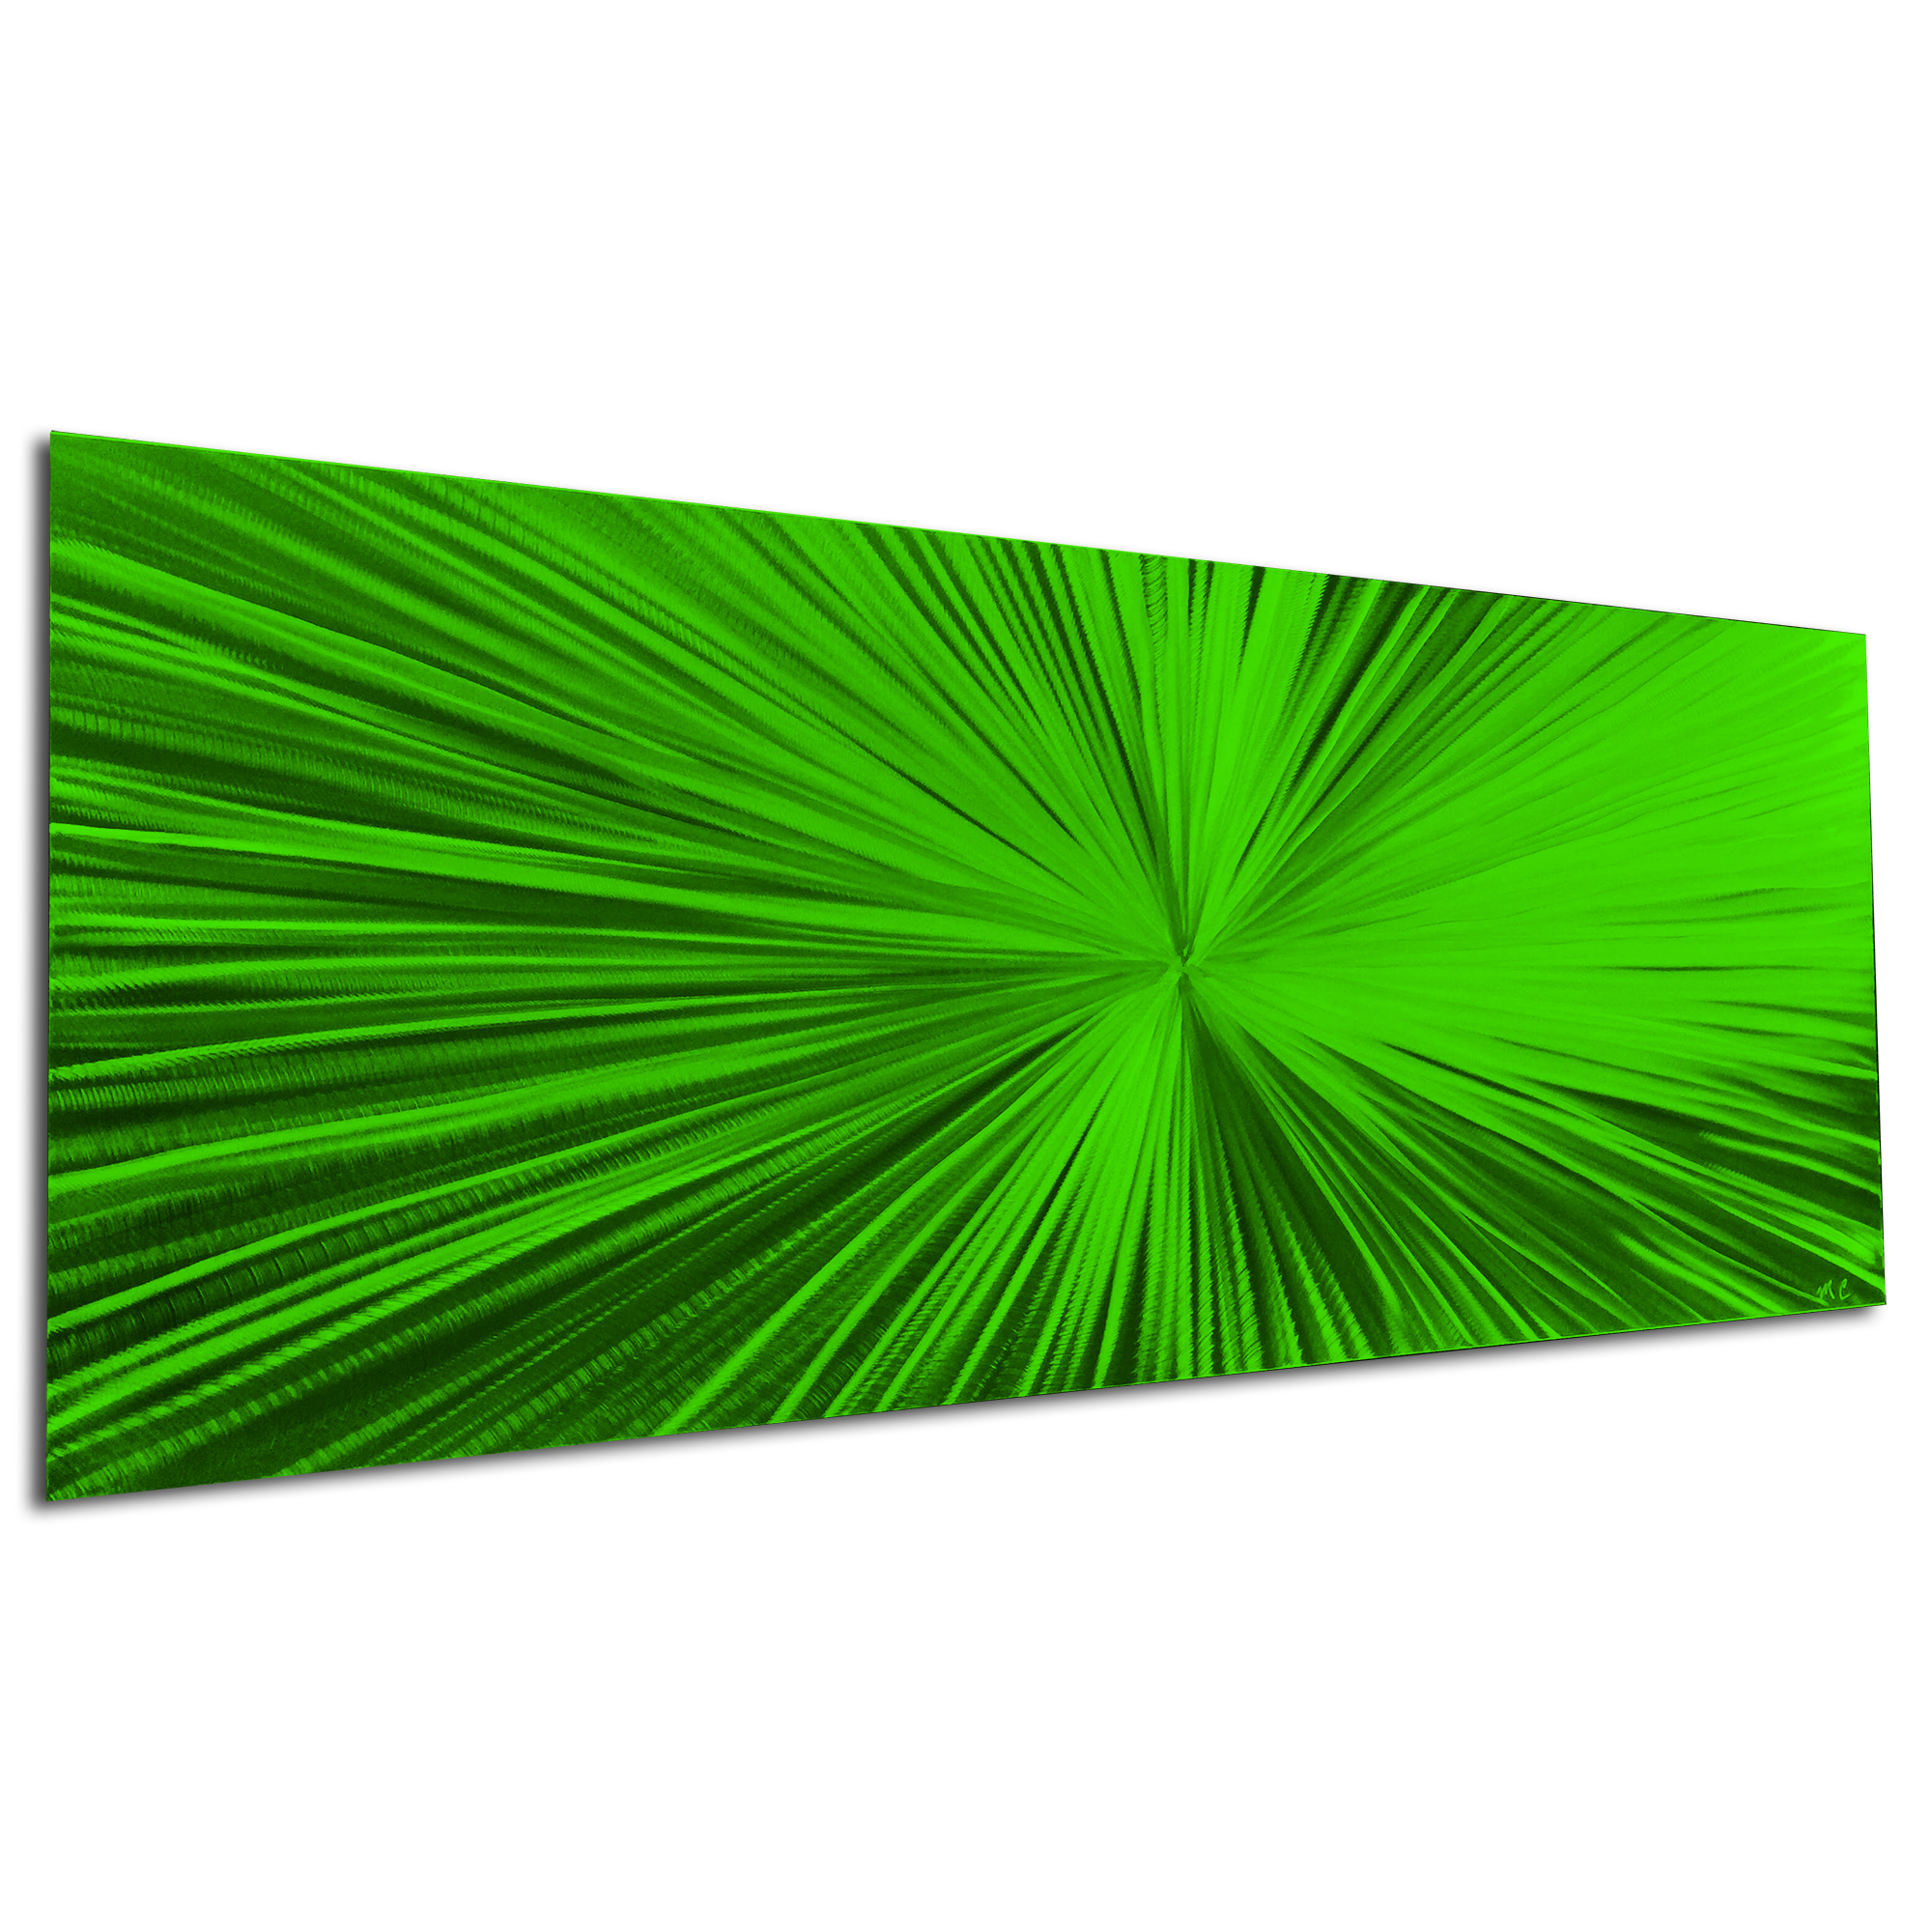 Starburst Green by Helena Martin - Original Abstract Art on Ground and Painted Metal - Image 3